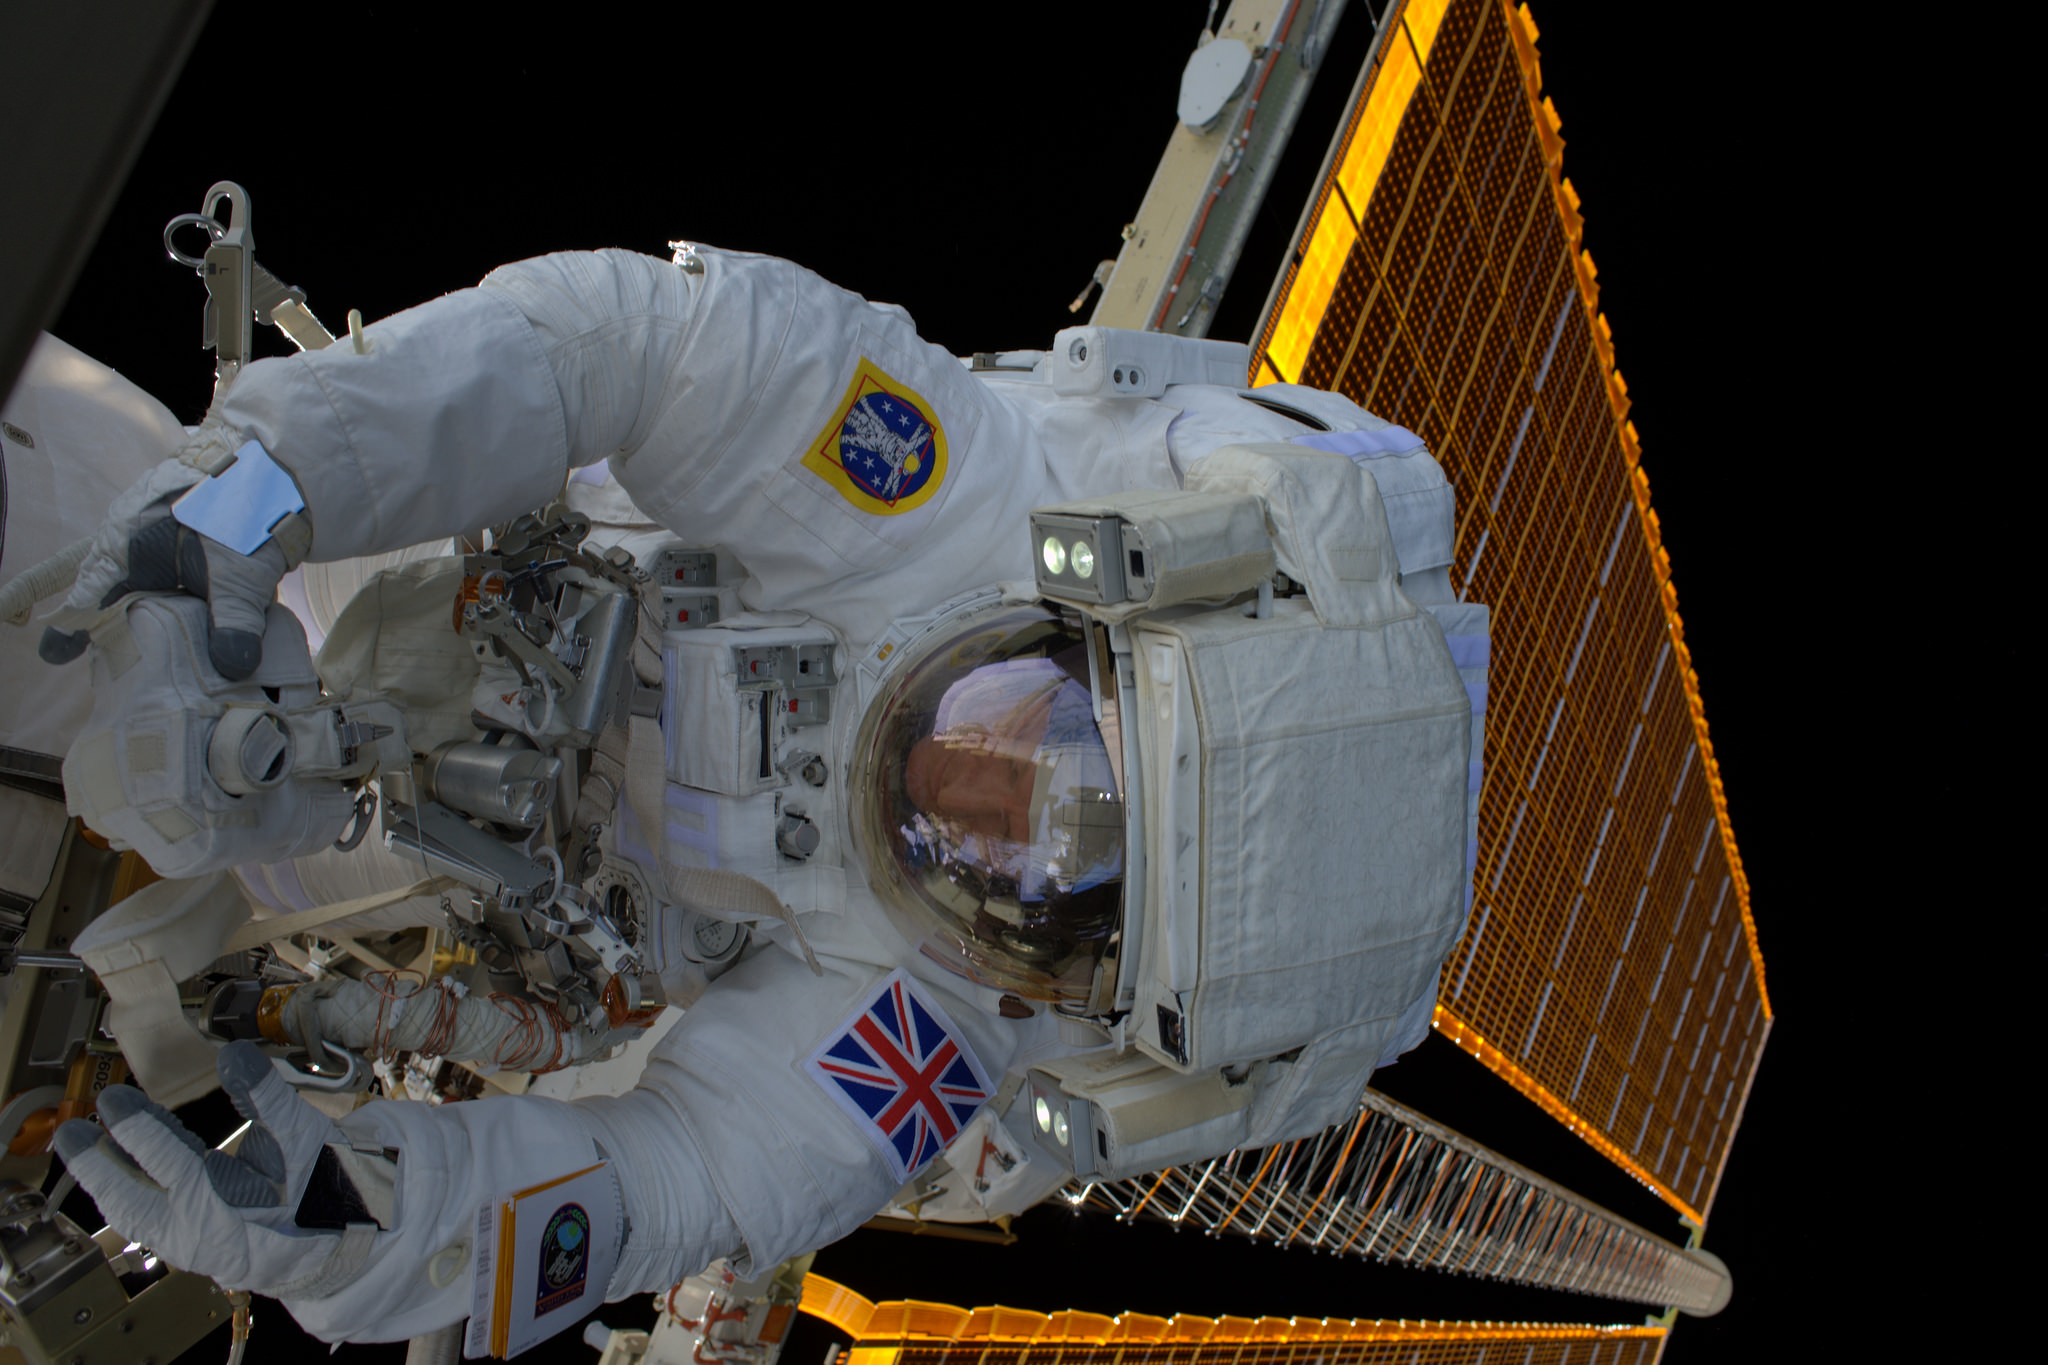 astronaut after space - photo #19